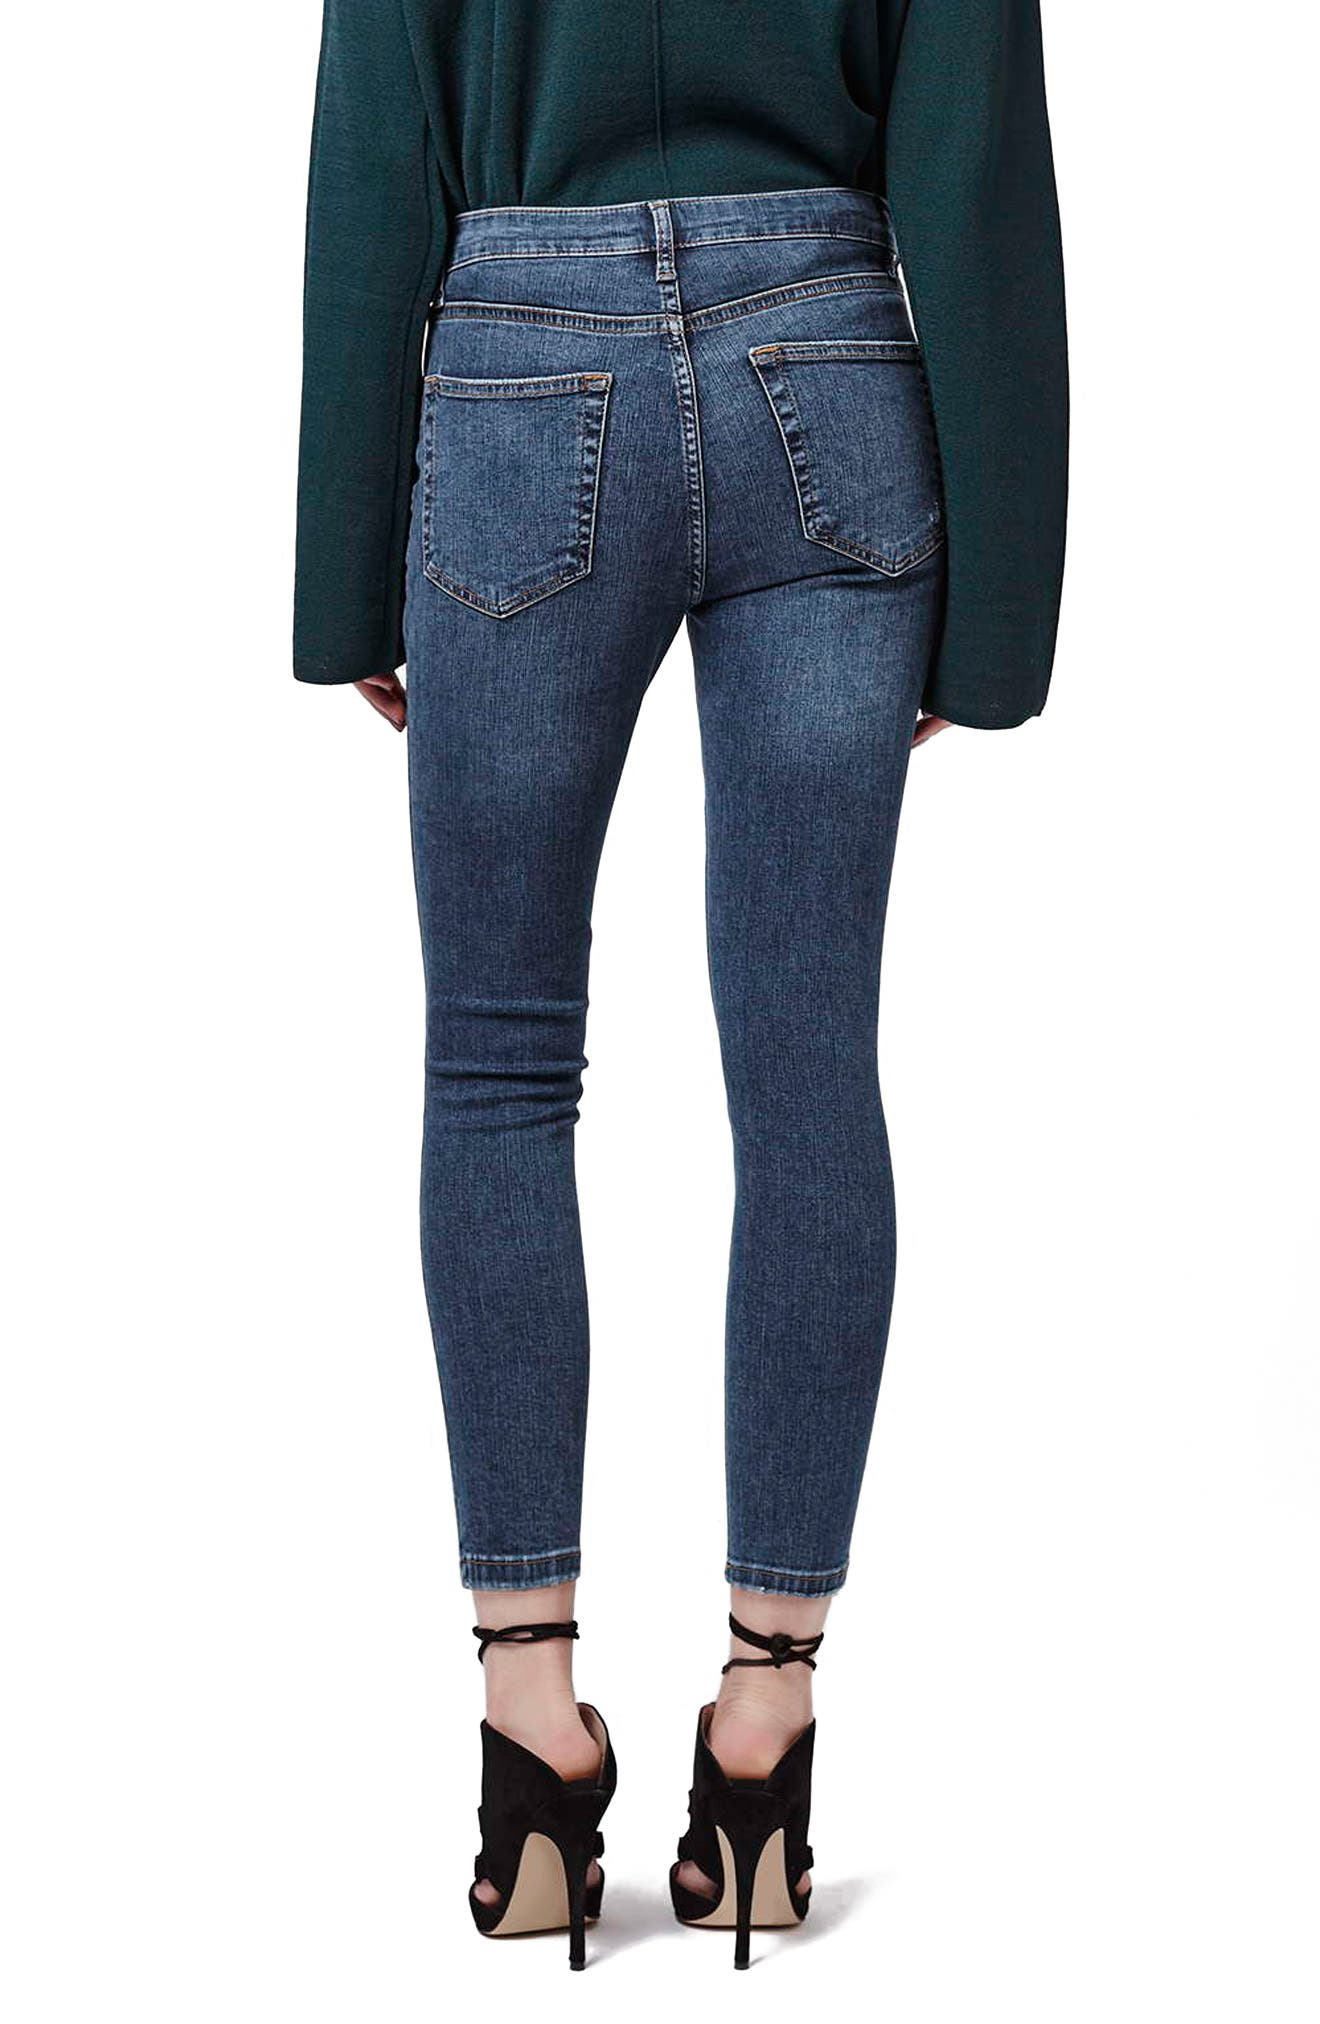 TOPSHOP,                             Moto 'Jamie' Ripped Skinny Ankle Jeans,                             Alternate thumbnail 3, color,                             MID DENIM